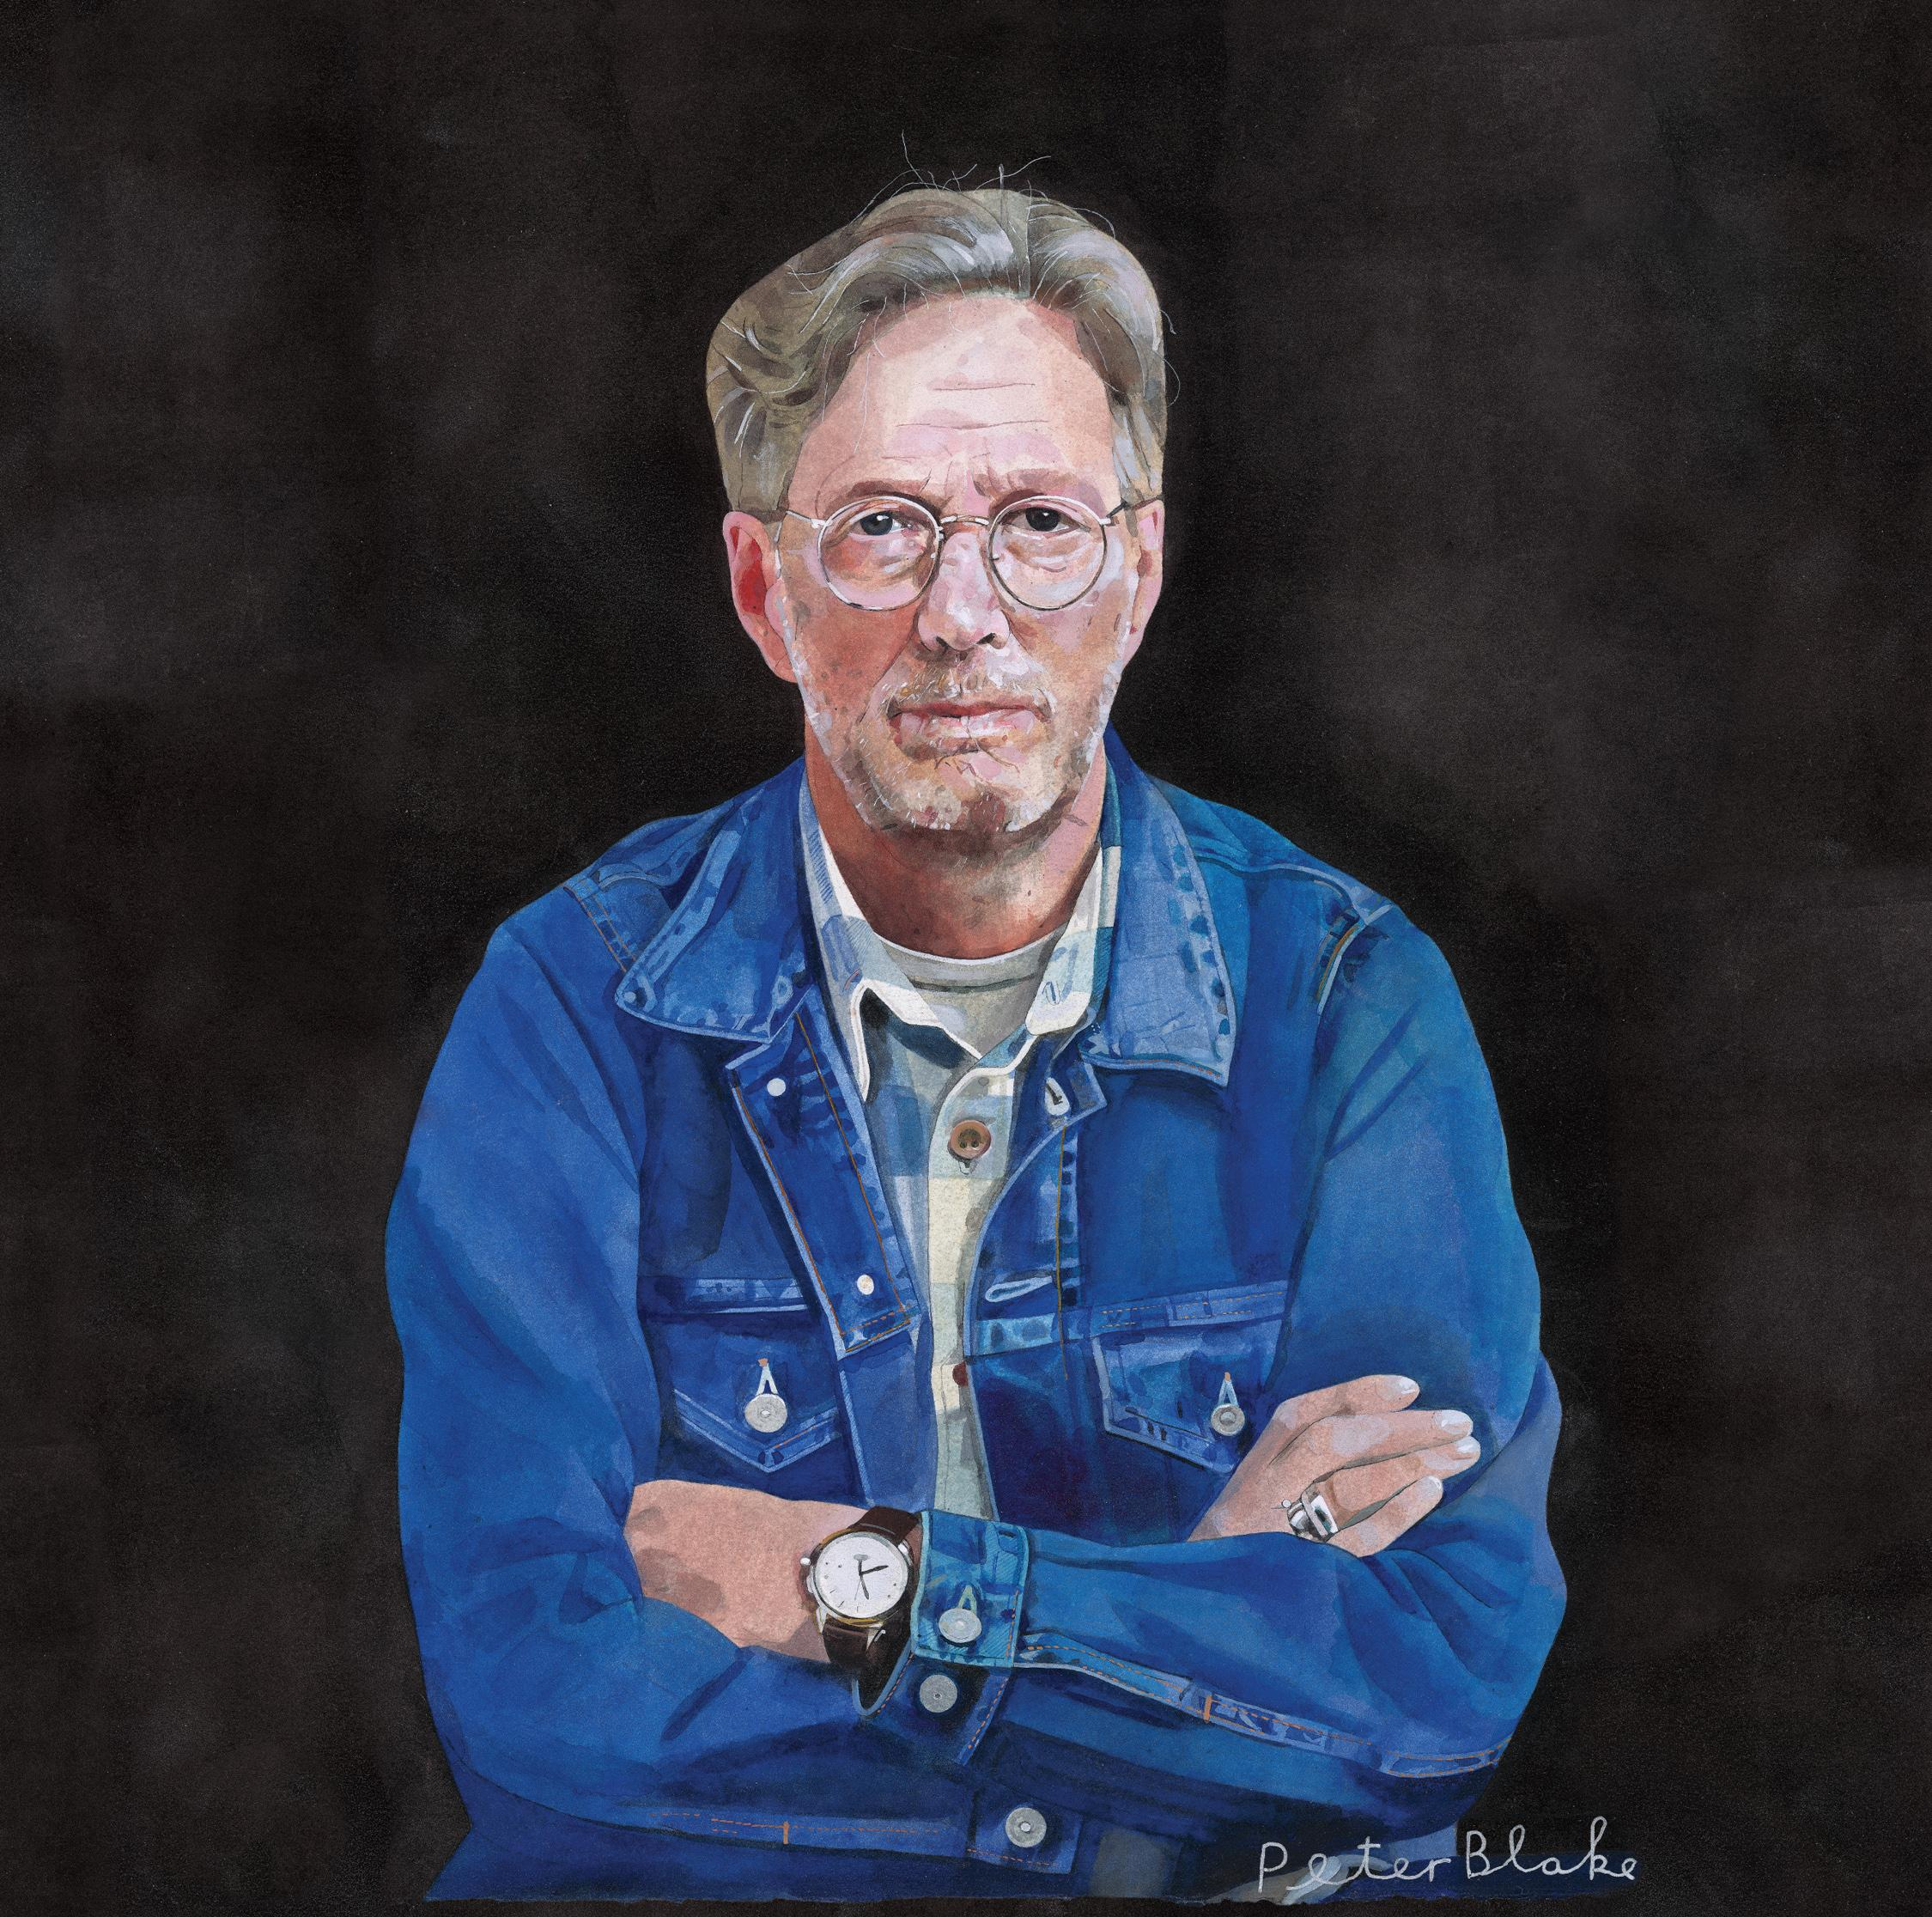 Review: Eric Clapton lays down the blues on 'I Still Do' - Washington Times